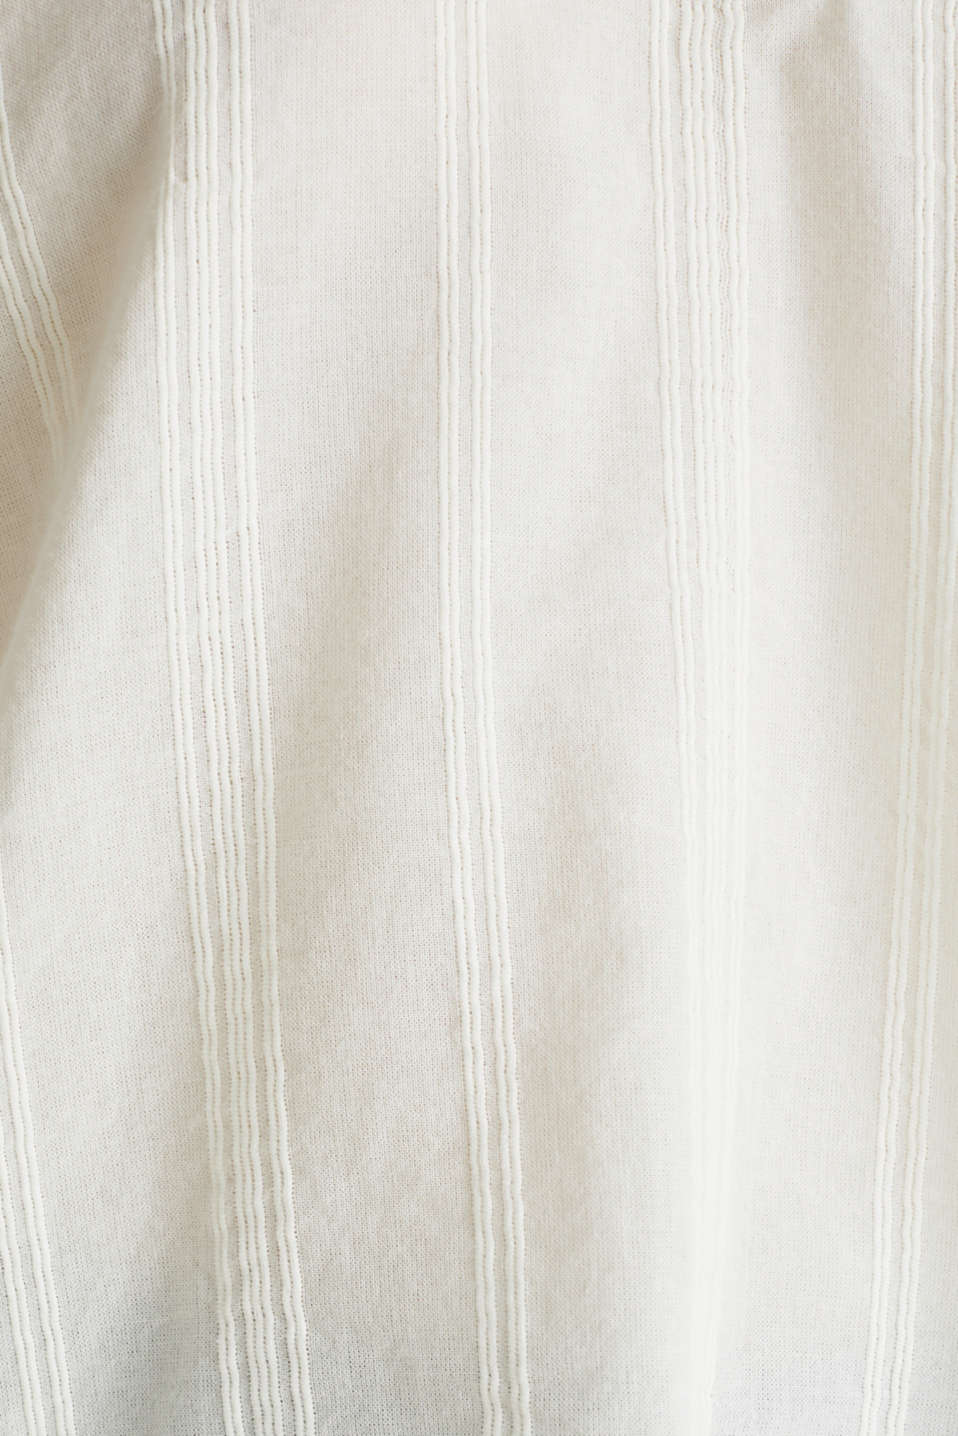 Textured blouse in 100% cotton, OFF WHITE, detail image number 3